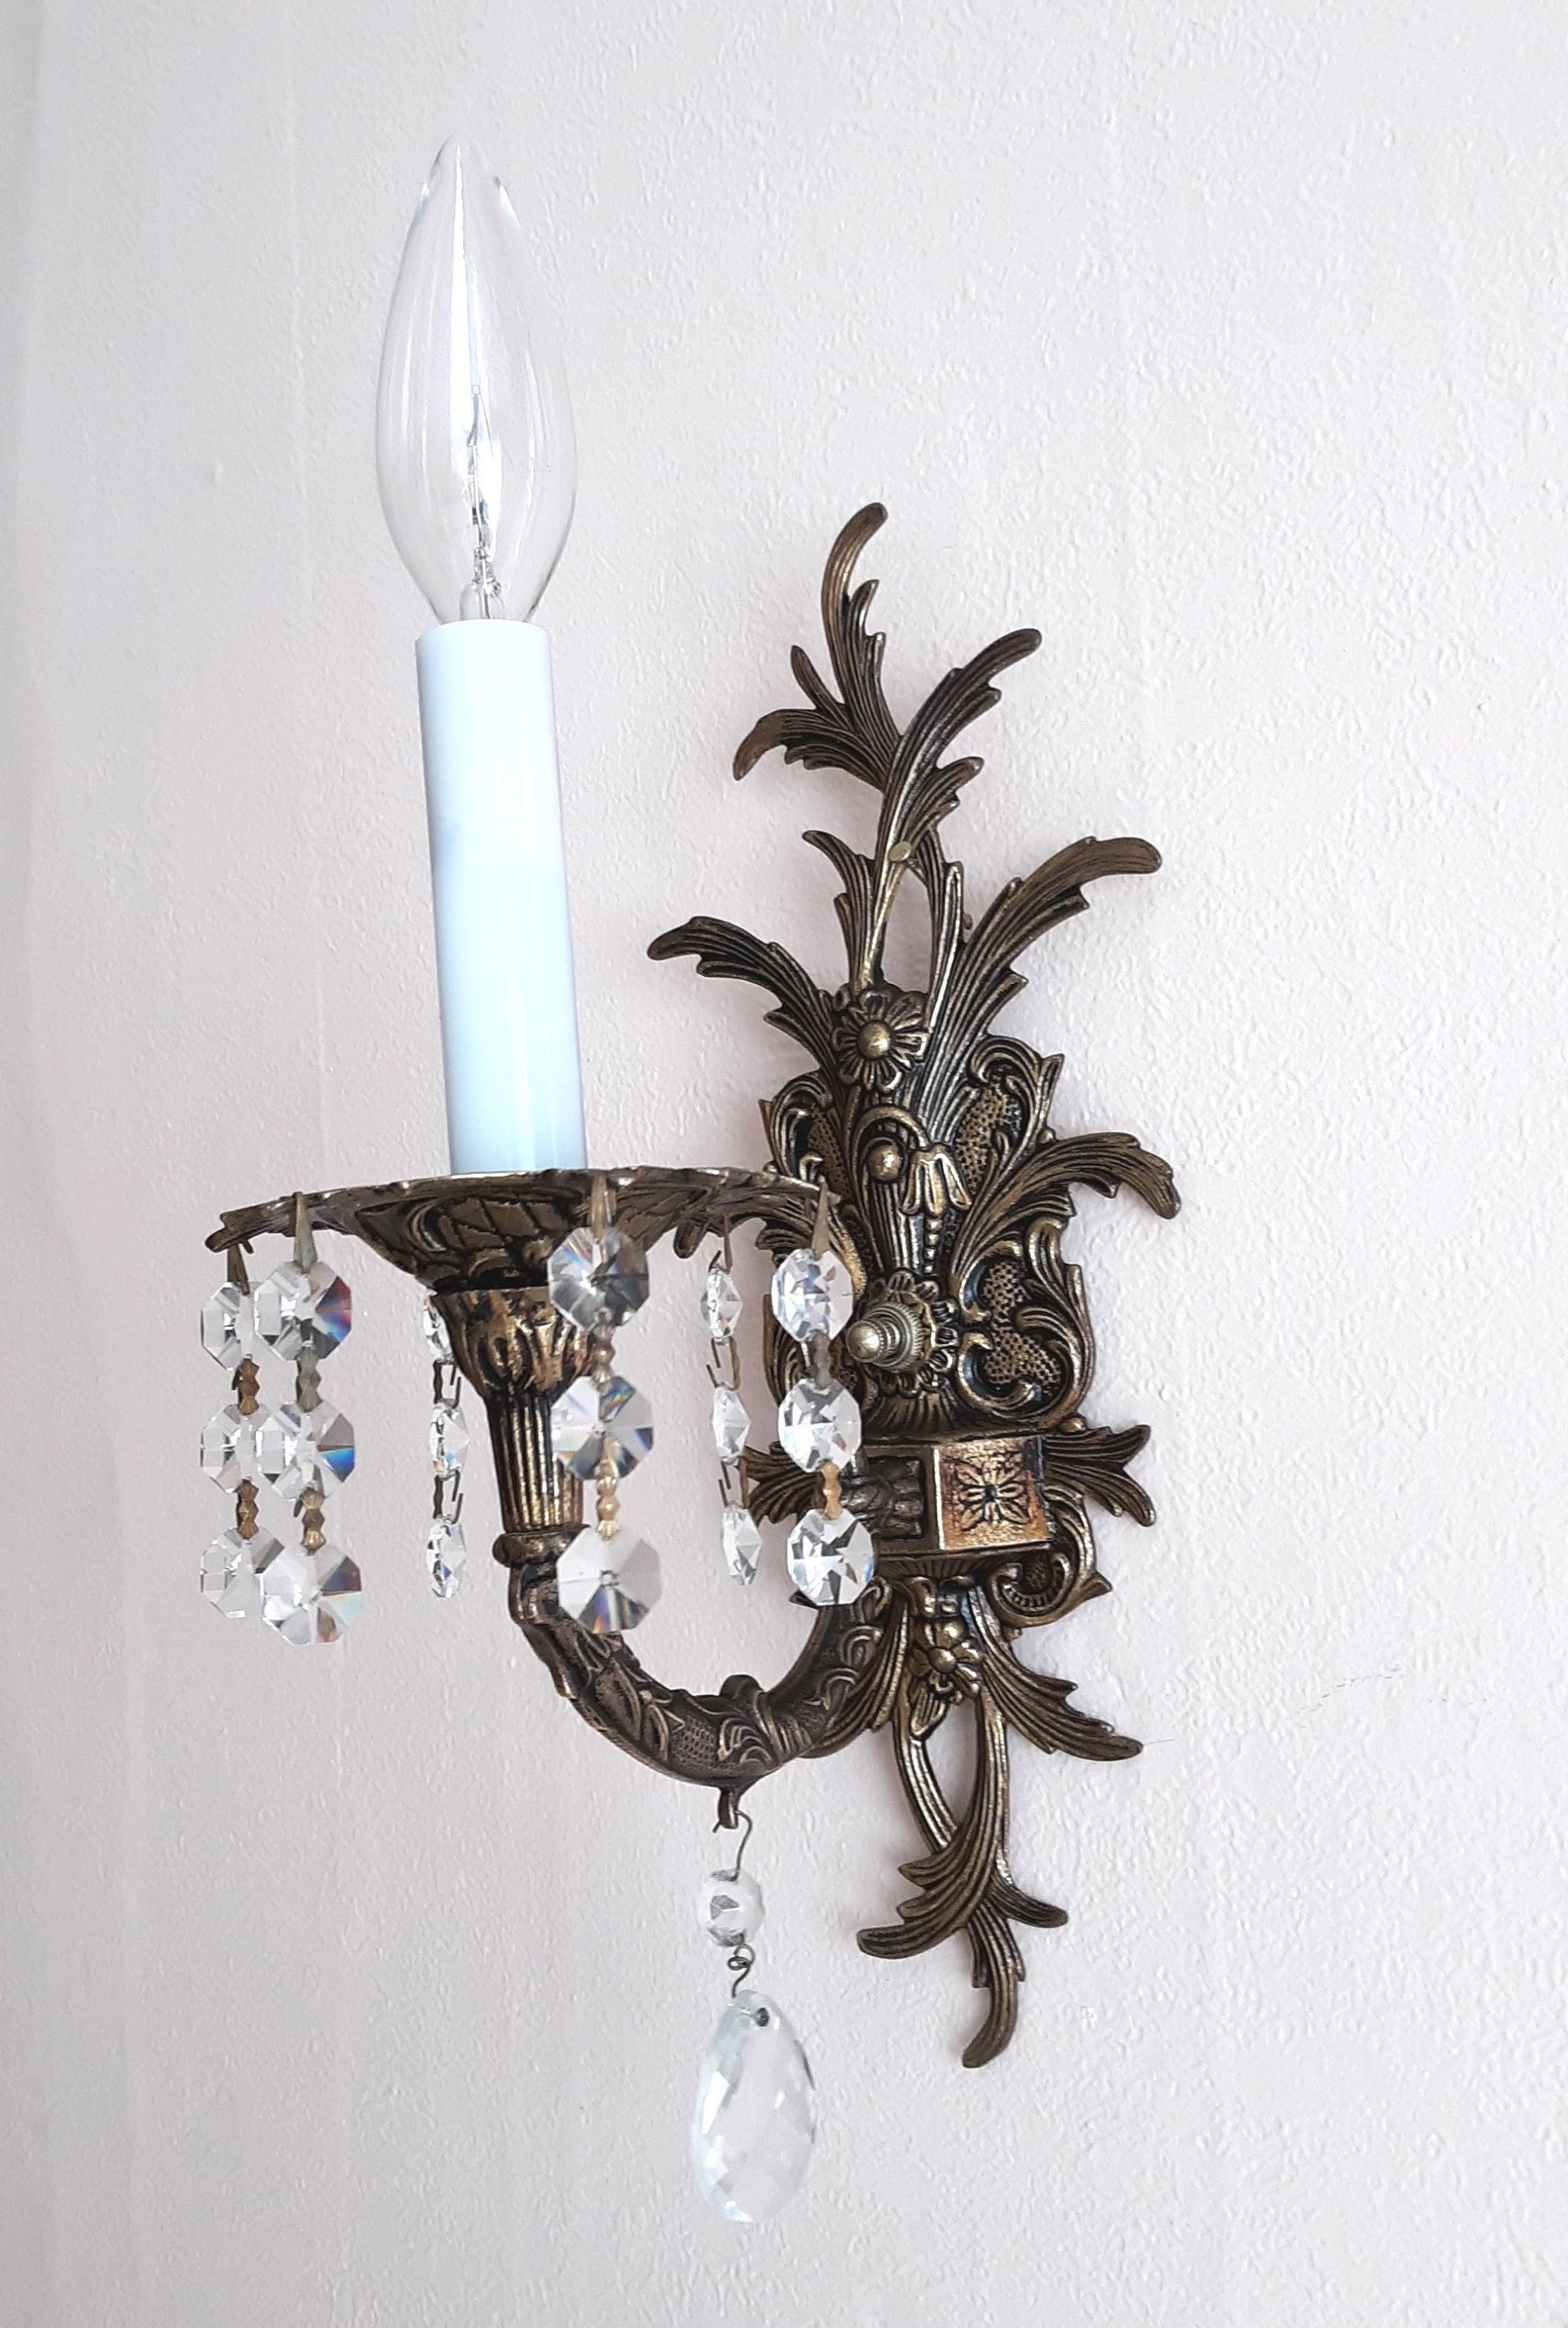 Vintage Unique Solid Brass American Rococo Revival Victorian Etsy In 2020 Victorian Wall Sconces Hanging Crystals Electric Wall Sconce